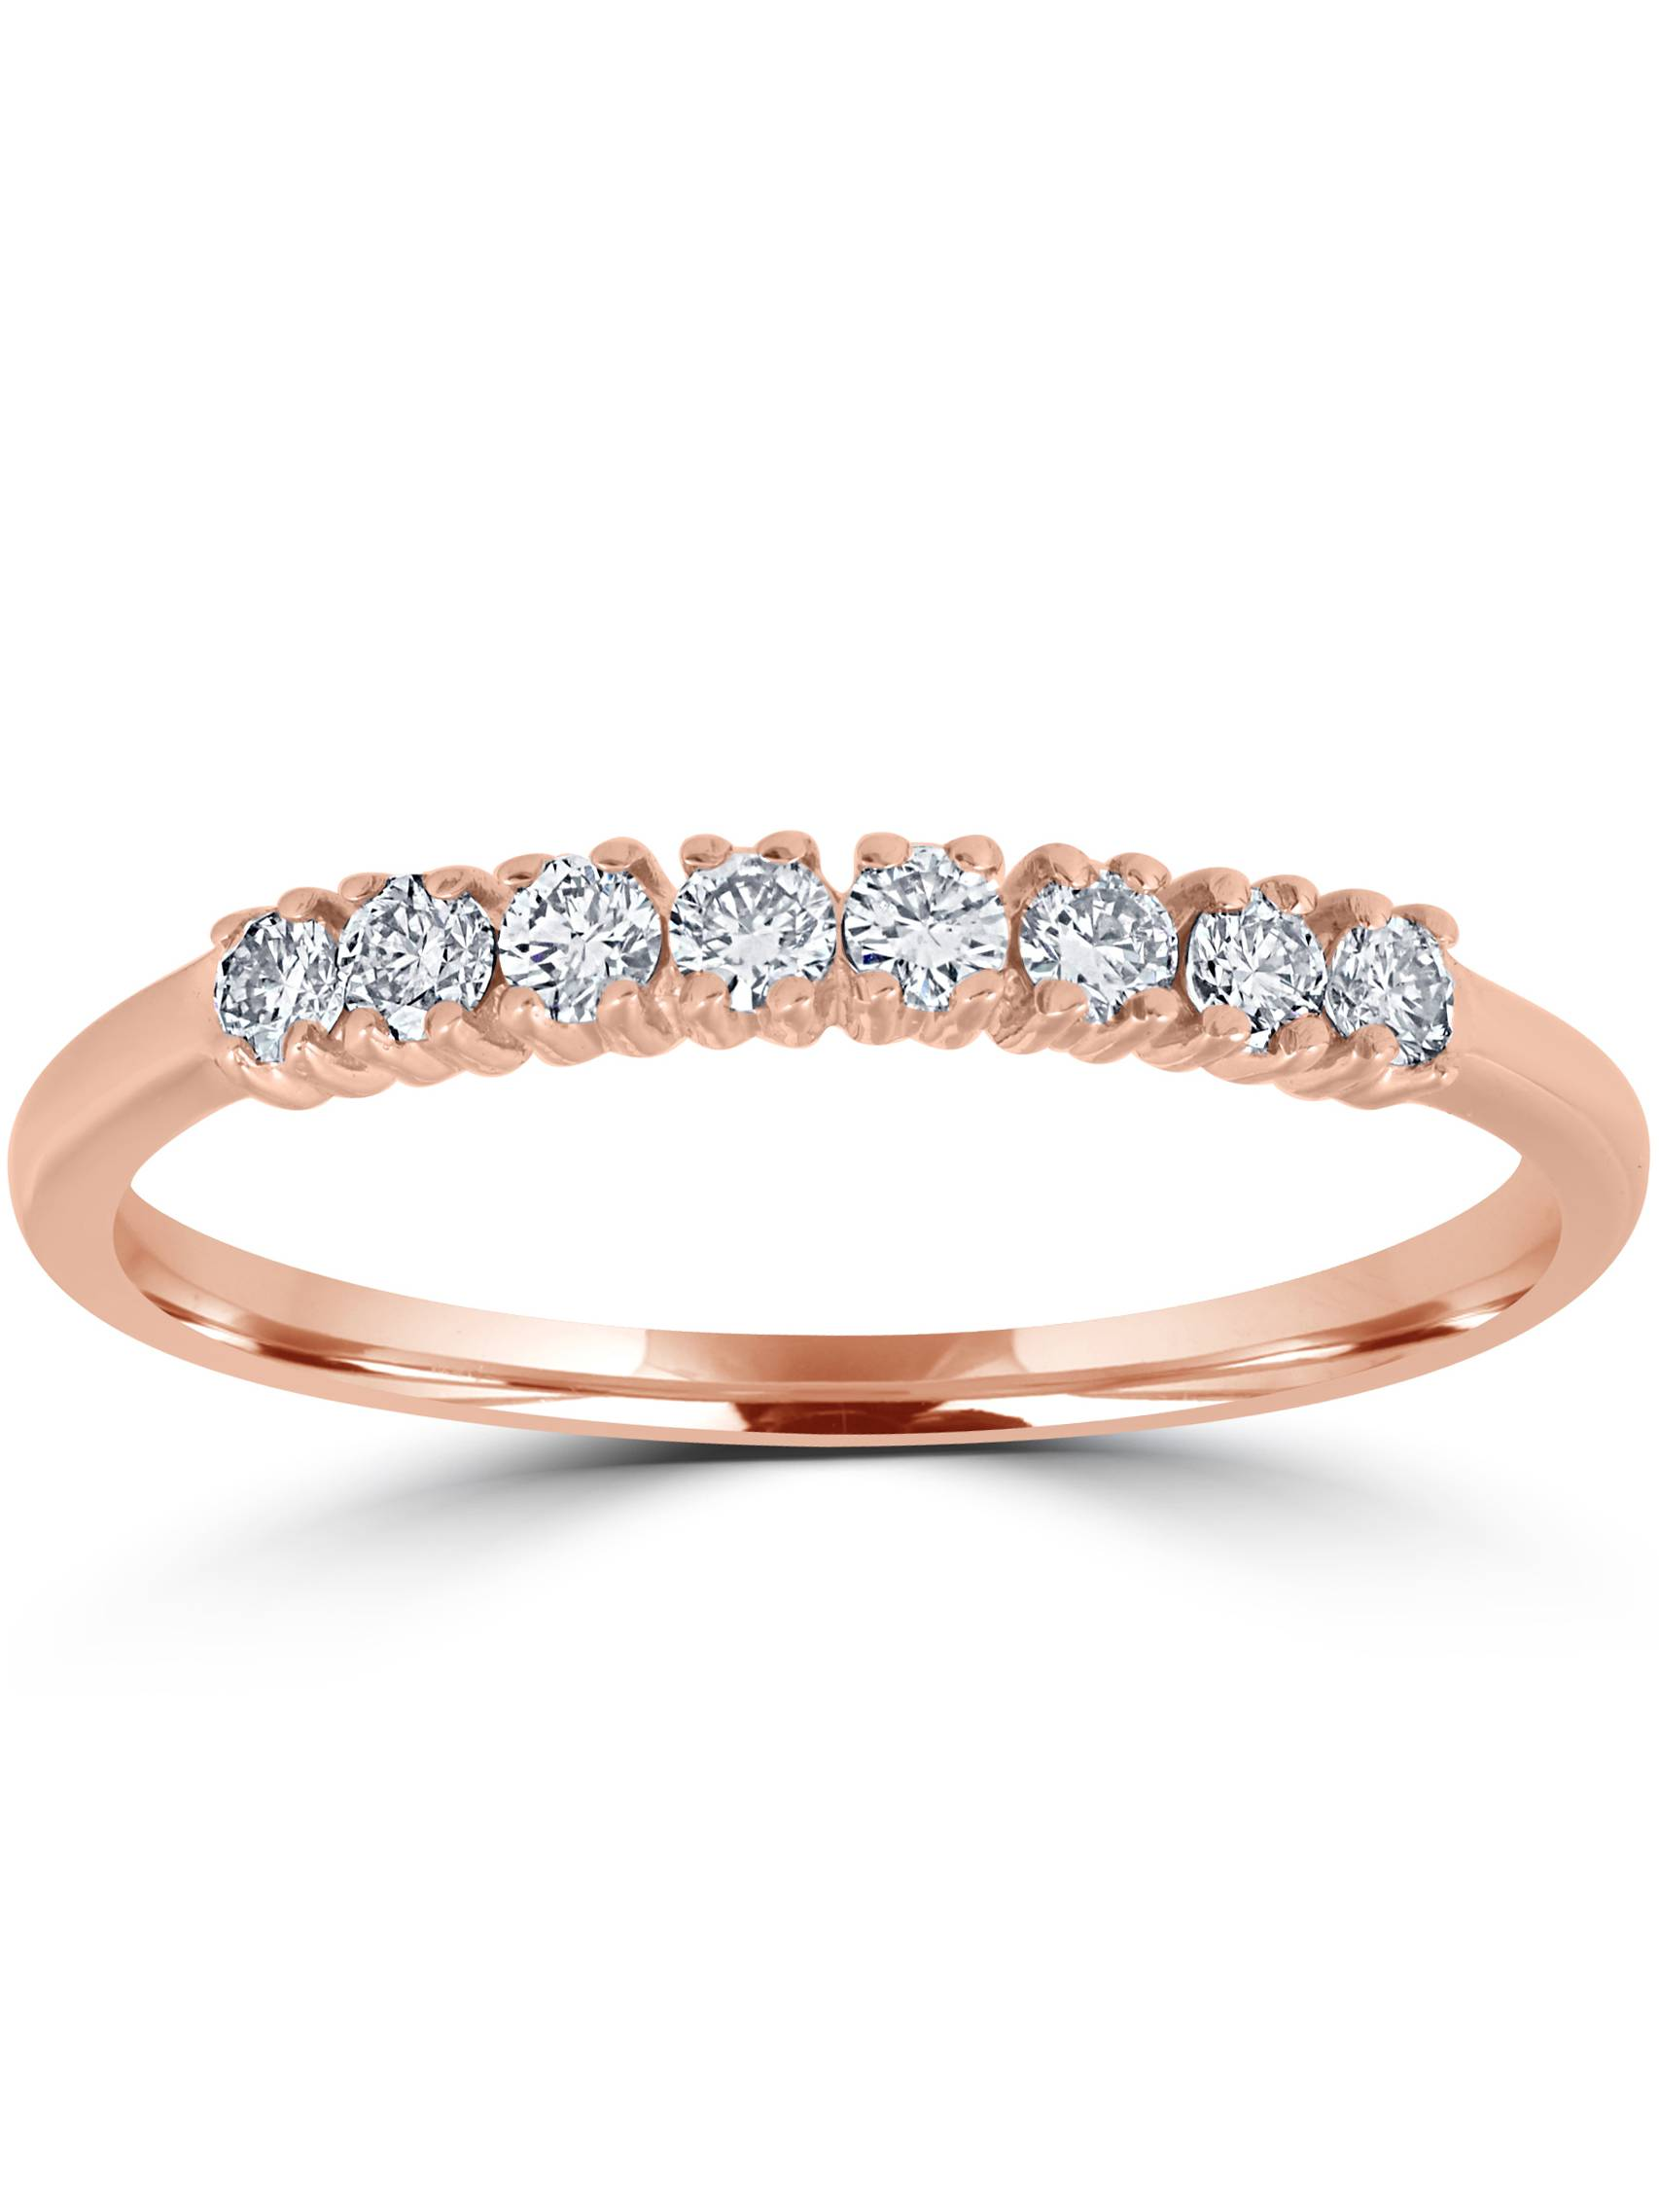 1/5ct Diamond Ring 14k Rose Gold Womens Stackable Wedding Anniversary Band